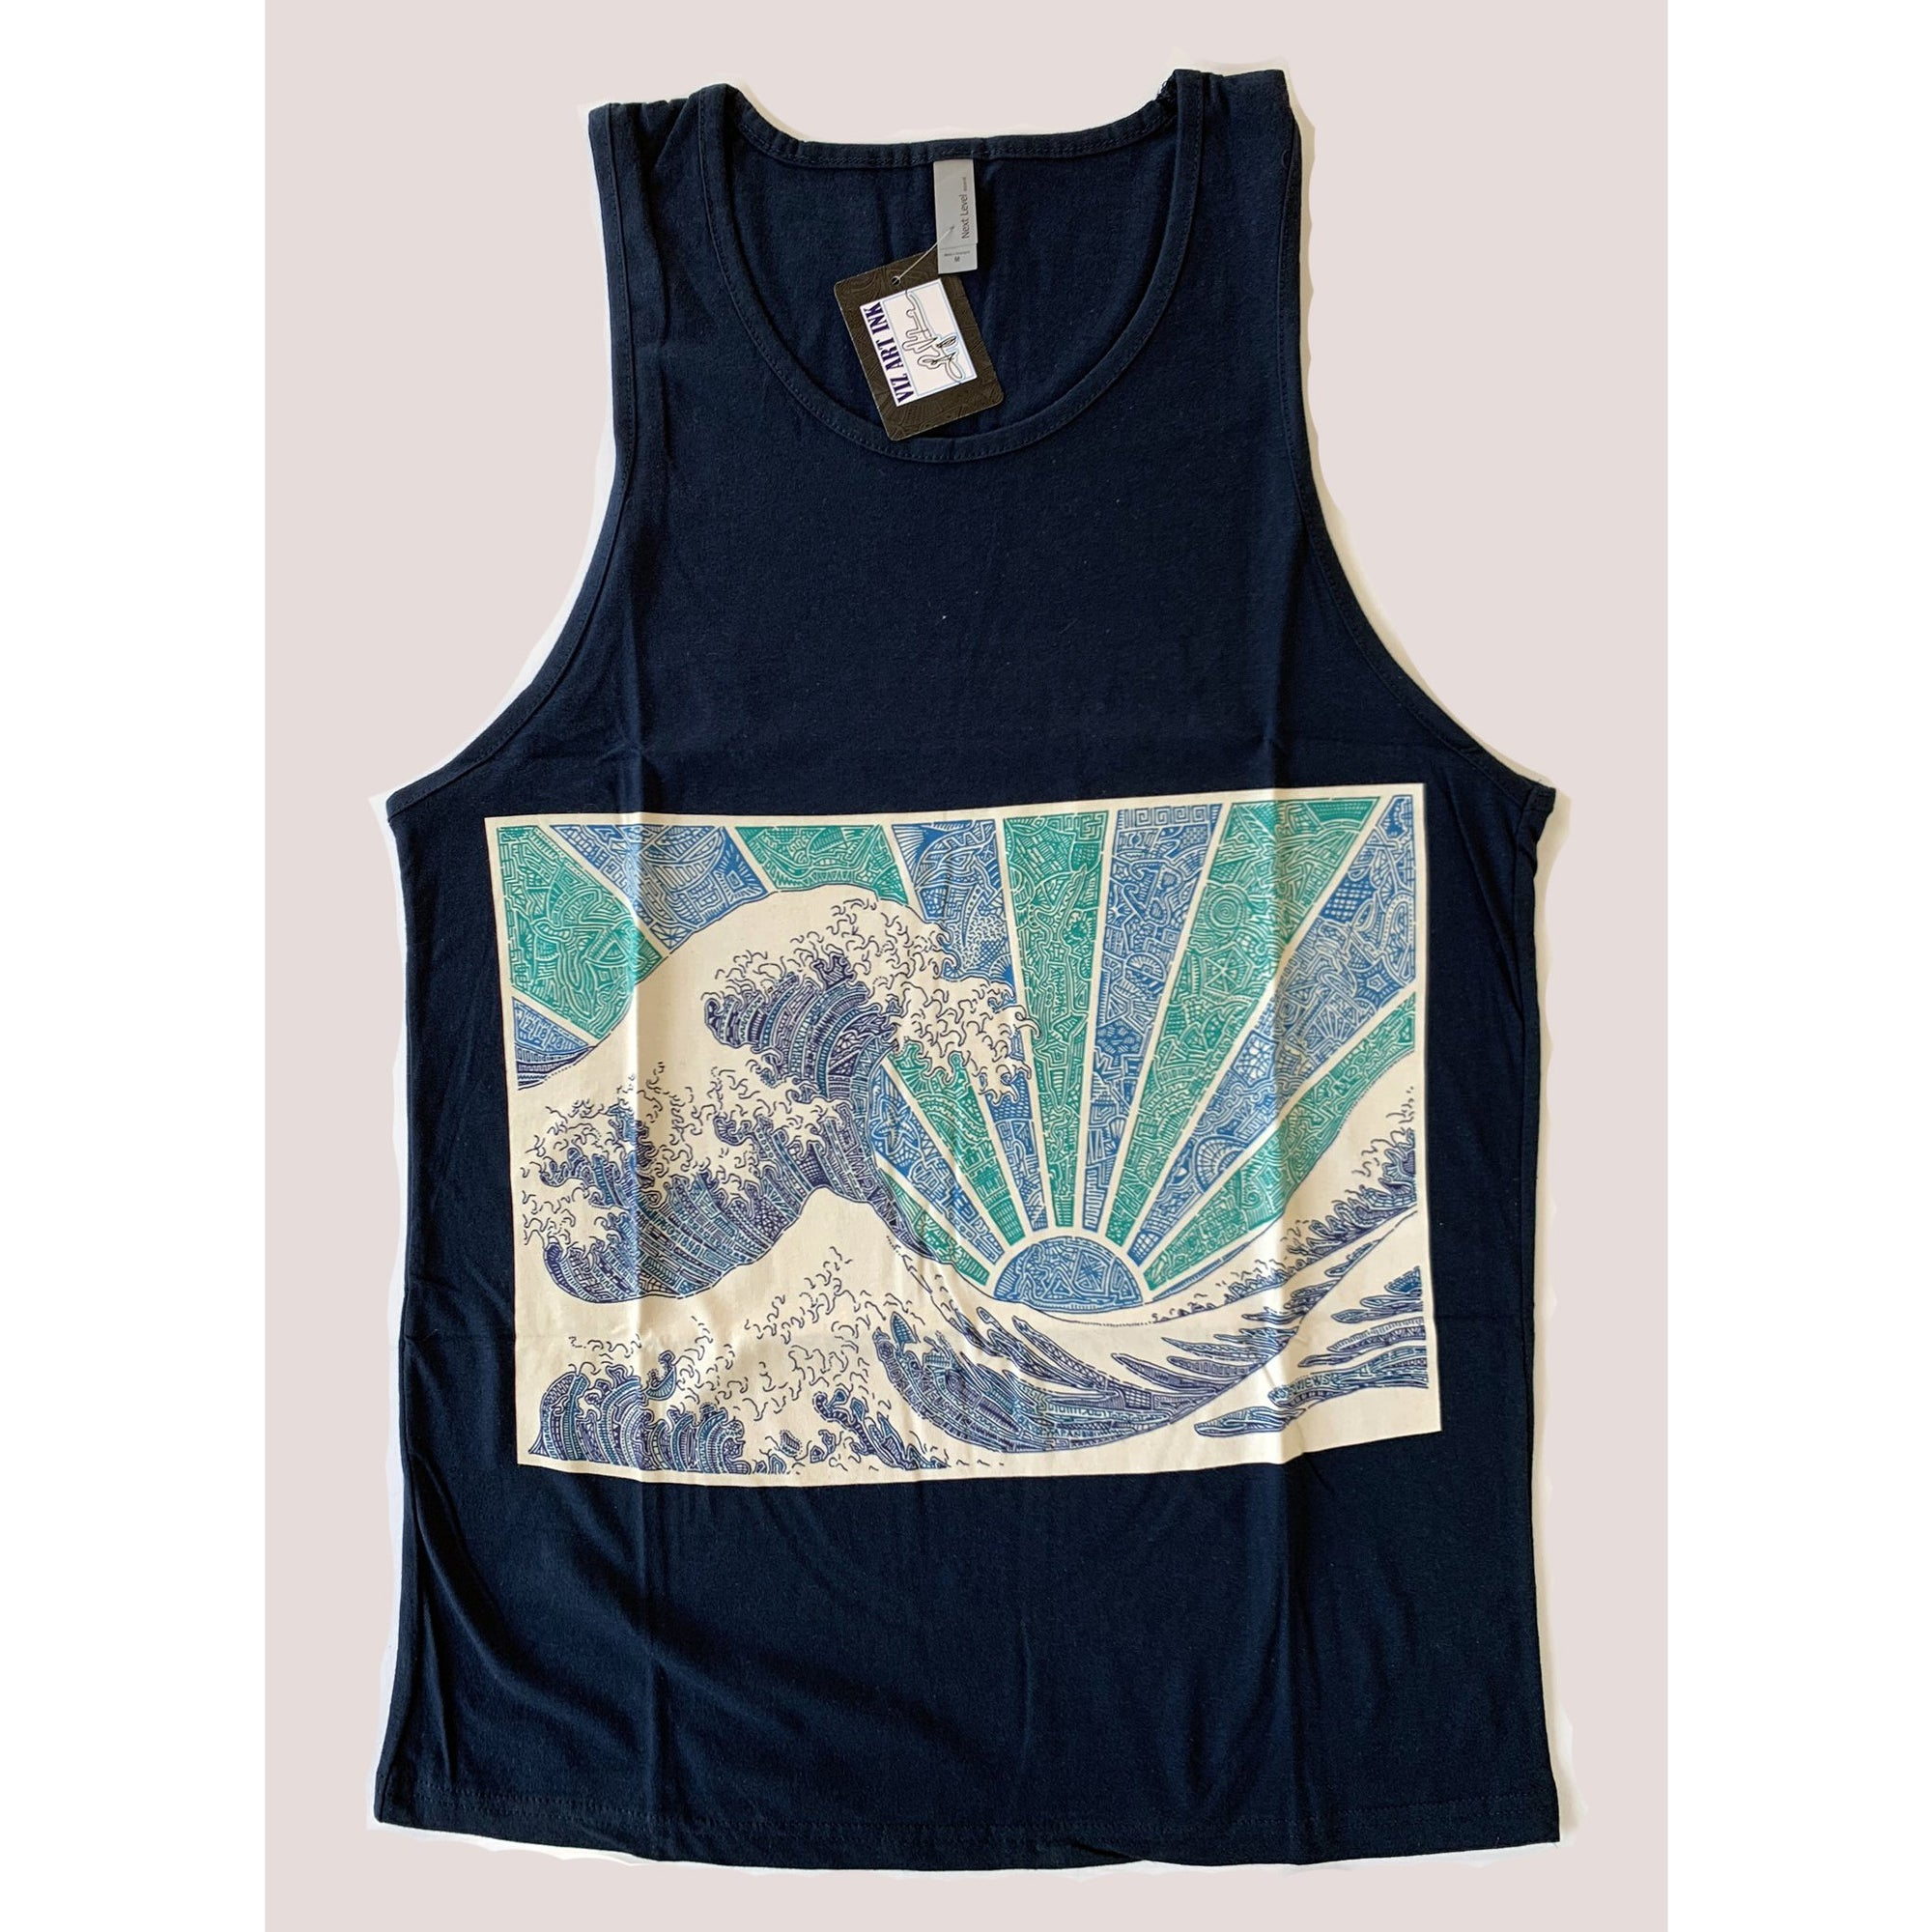 Tank Top - Off California (Navy & White)